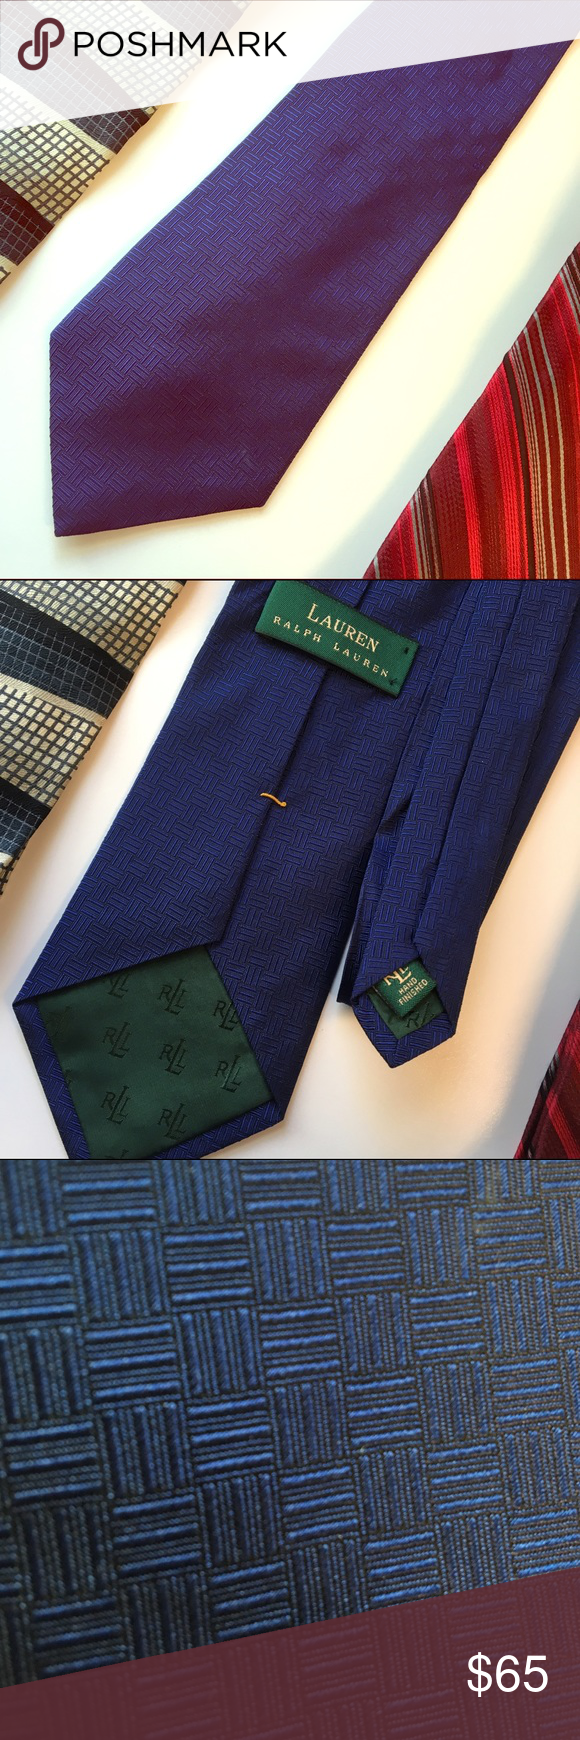 Lauren Ralph Lauren Silk Textured Tie Classic style in Navy. Textured design. Hand finished. Beautifully made. 100% Silk. Like new! ⚓️The Captain's Quarters; A Voyage Through Menswear⚓️ 👔👔10% OFF 2/15% OFF 3+ ITEM BUNDLE ⚓️👗You May Bundle w/@fababscloset 😊PLEASE USE OFFER BUTTON ❌NO PP, TRADES, HOLDS❌  👍🏻ITEMS ALWAYS 100% AUTHENTIC 🏄🏼SUGGESTED USER🏄🏼 Lauren Ralph Lauren Accessories Ties